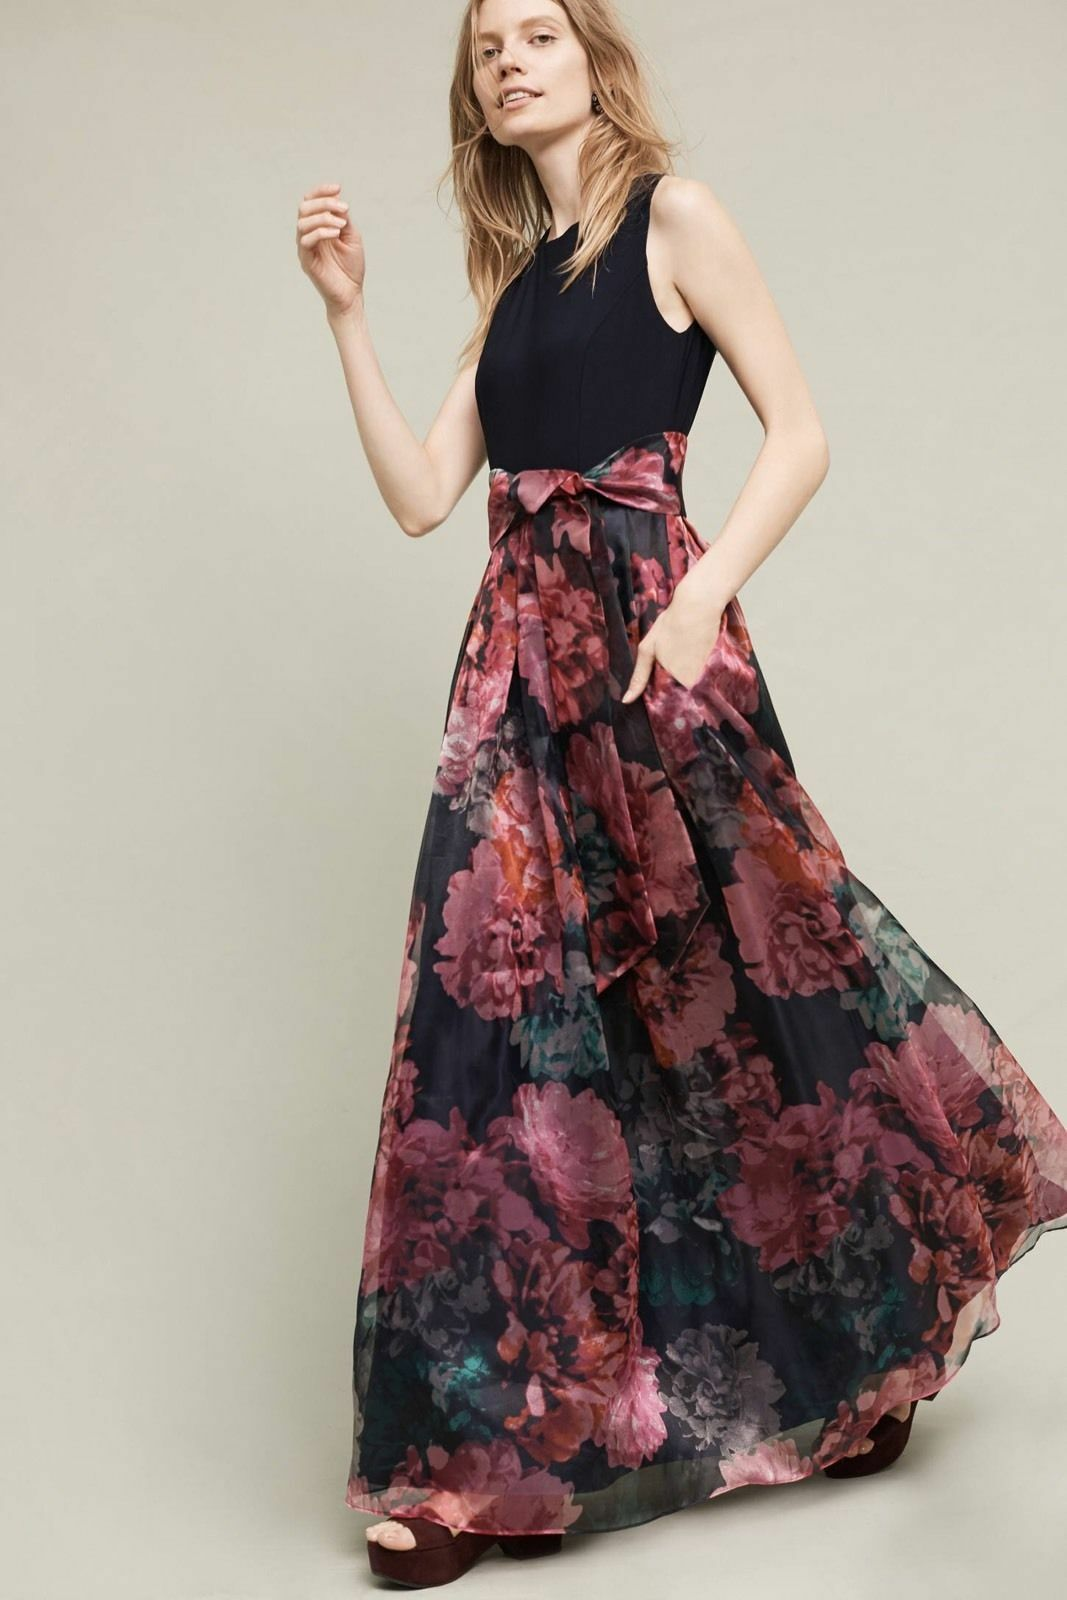 NWT SZ 4 Blooming Bow Dress By Moulinette Soeurs Maxi Gown